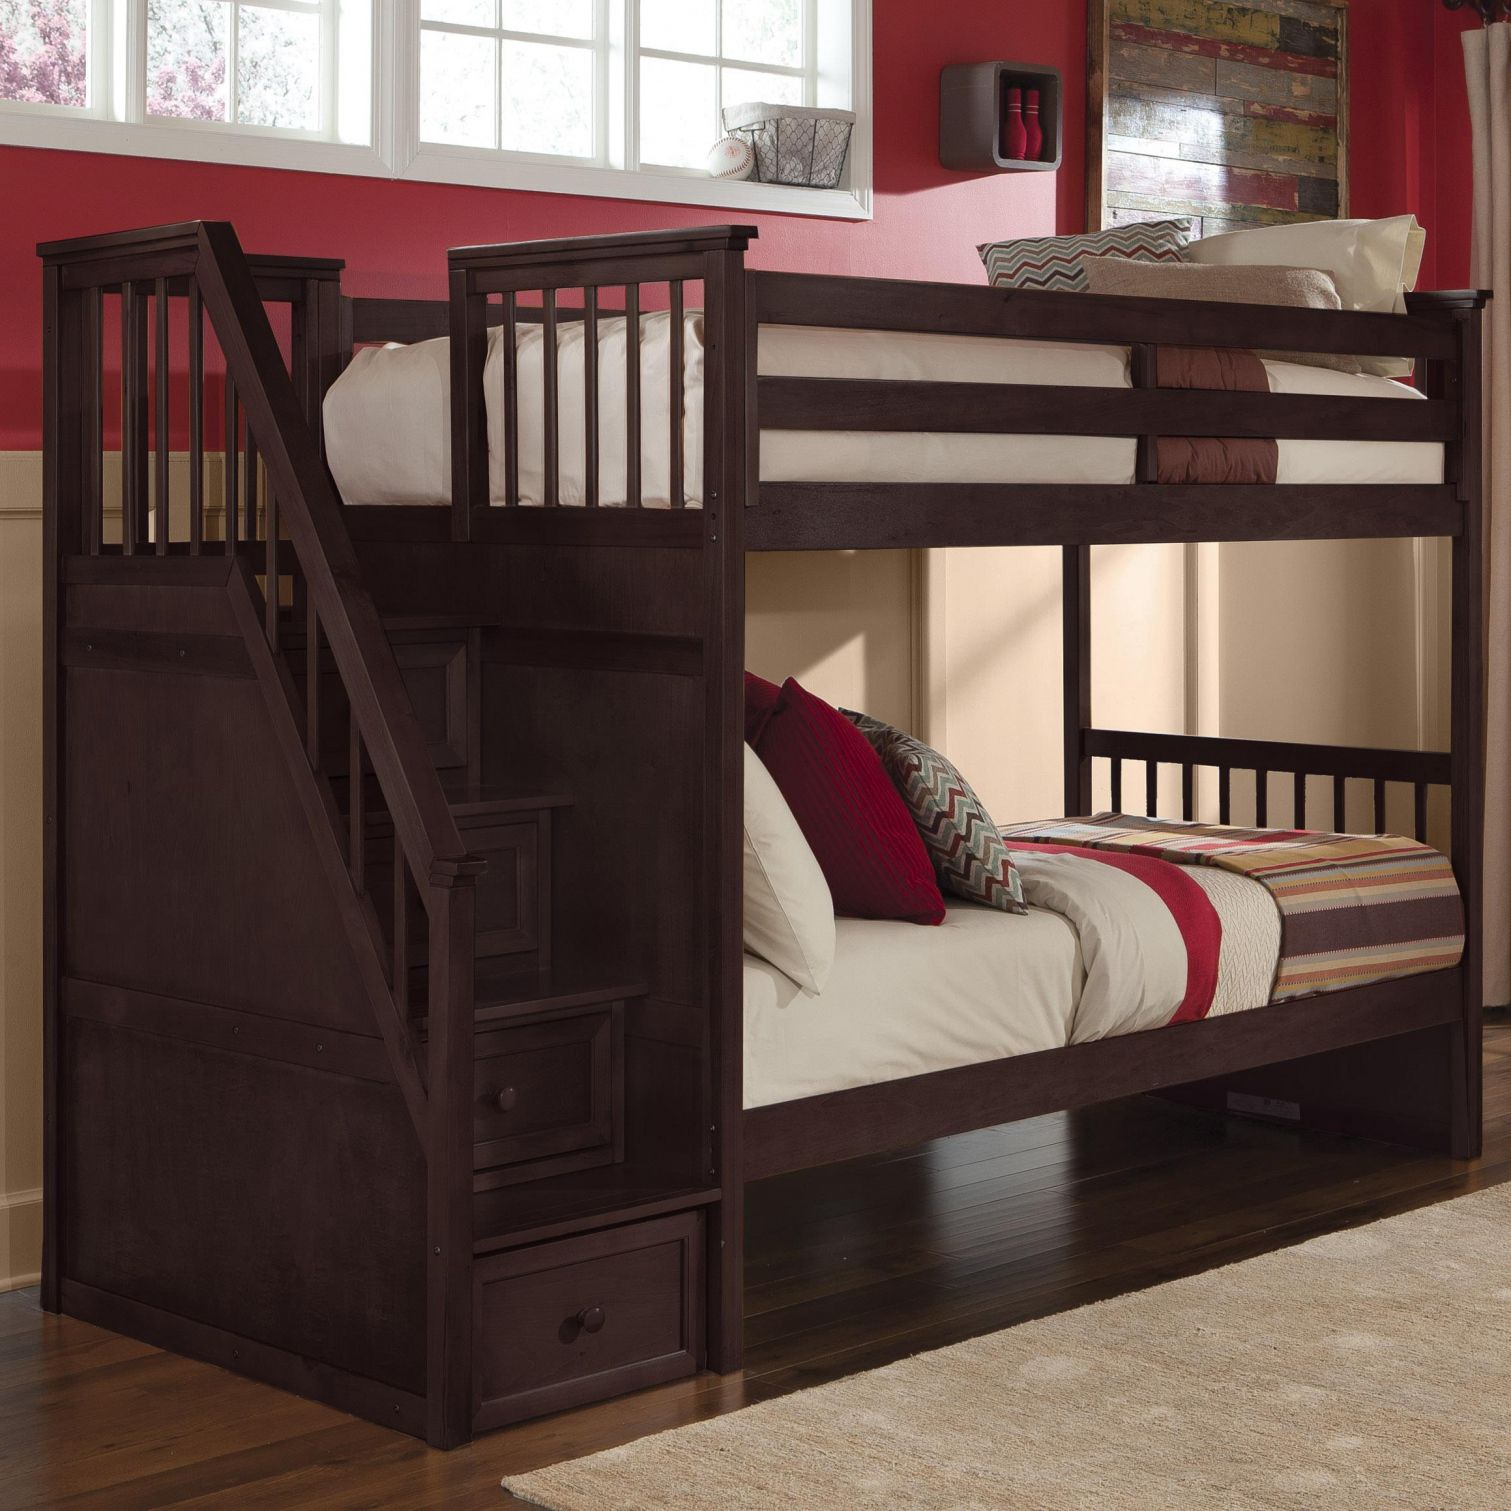 Best Of Rooms with Bunk Beds